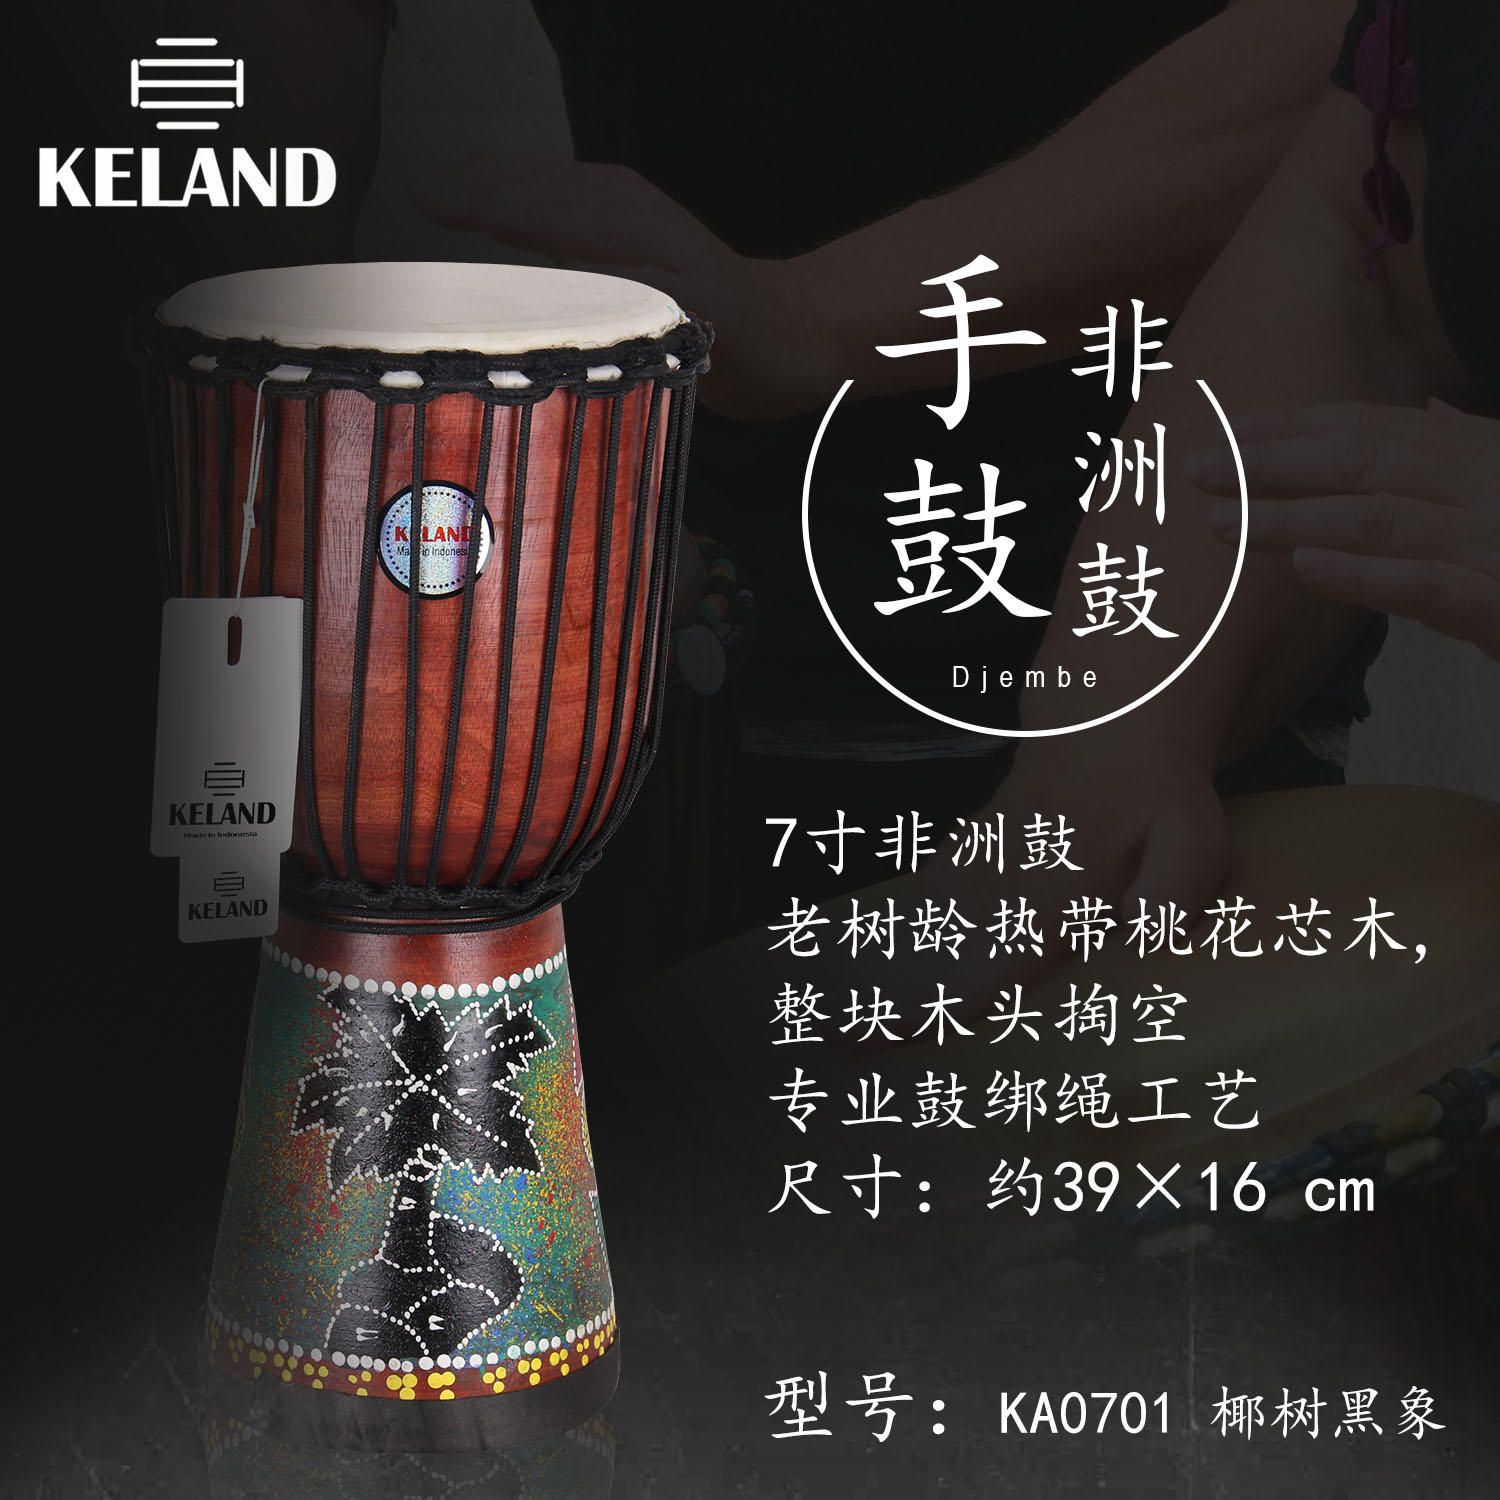 Keland Kailang brand Indonesian imported African drum ka0701 dot painted 7-inch childrens African drum